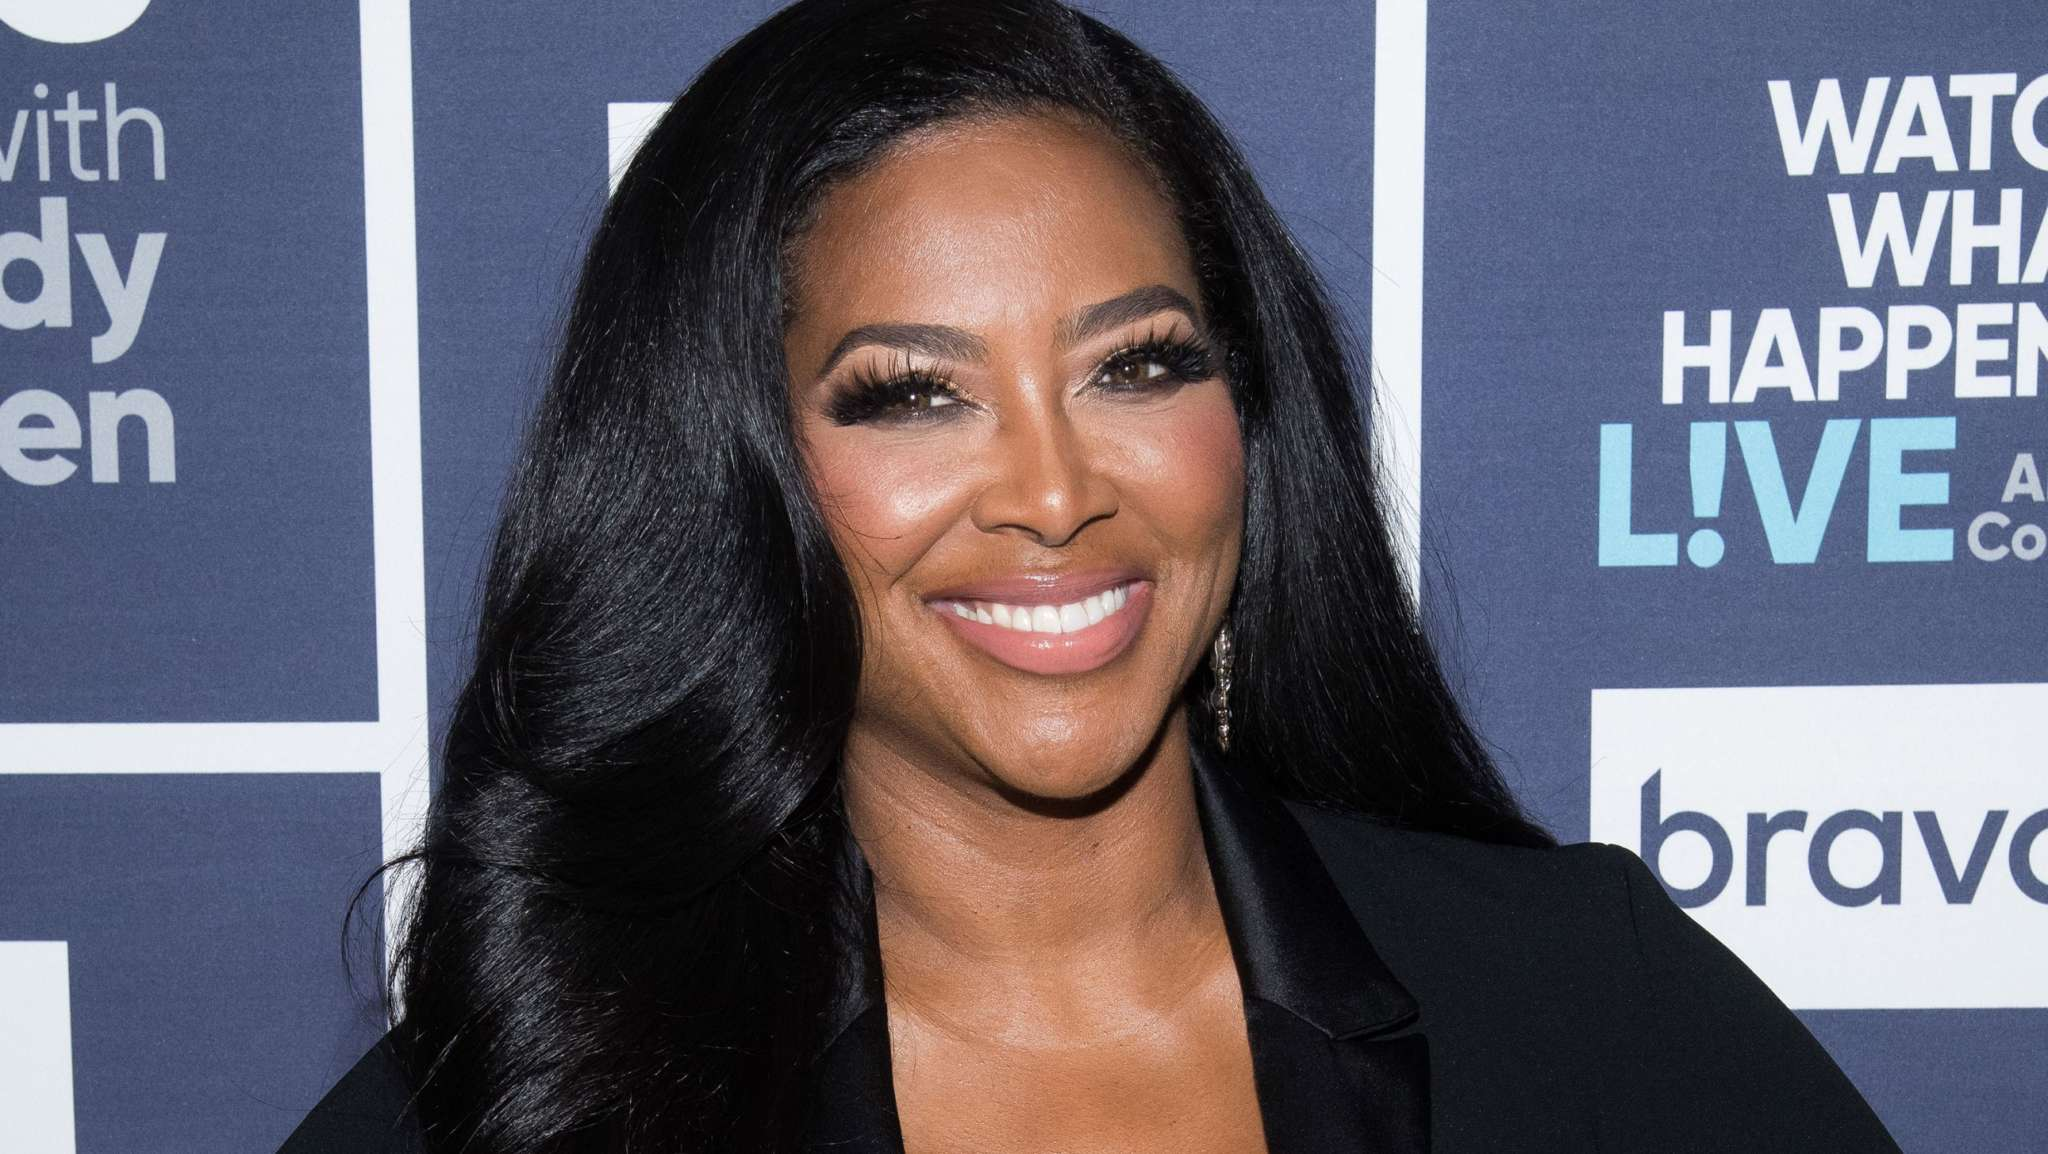 Kenya Moore Breaks The Internet With A New Jaw-Dropping Look That Blows Fans' Minds – See Her Latest Photo